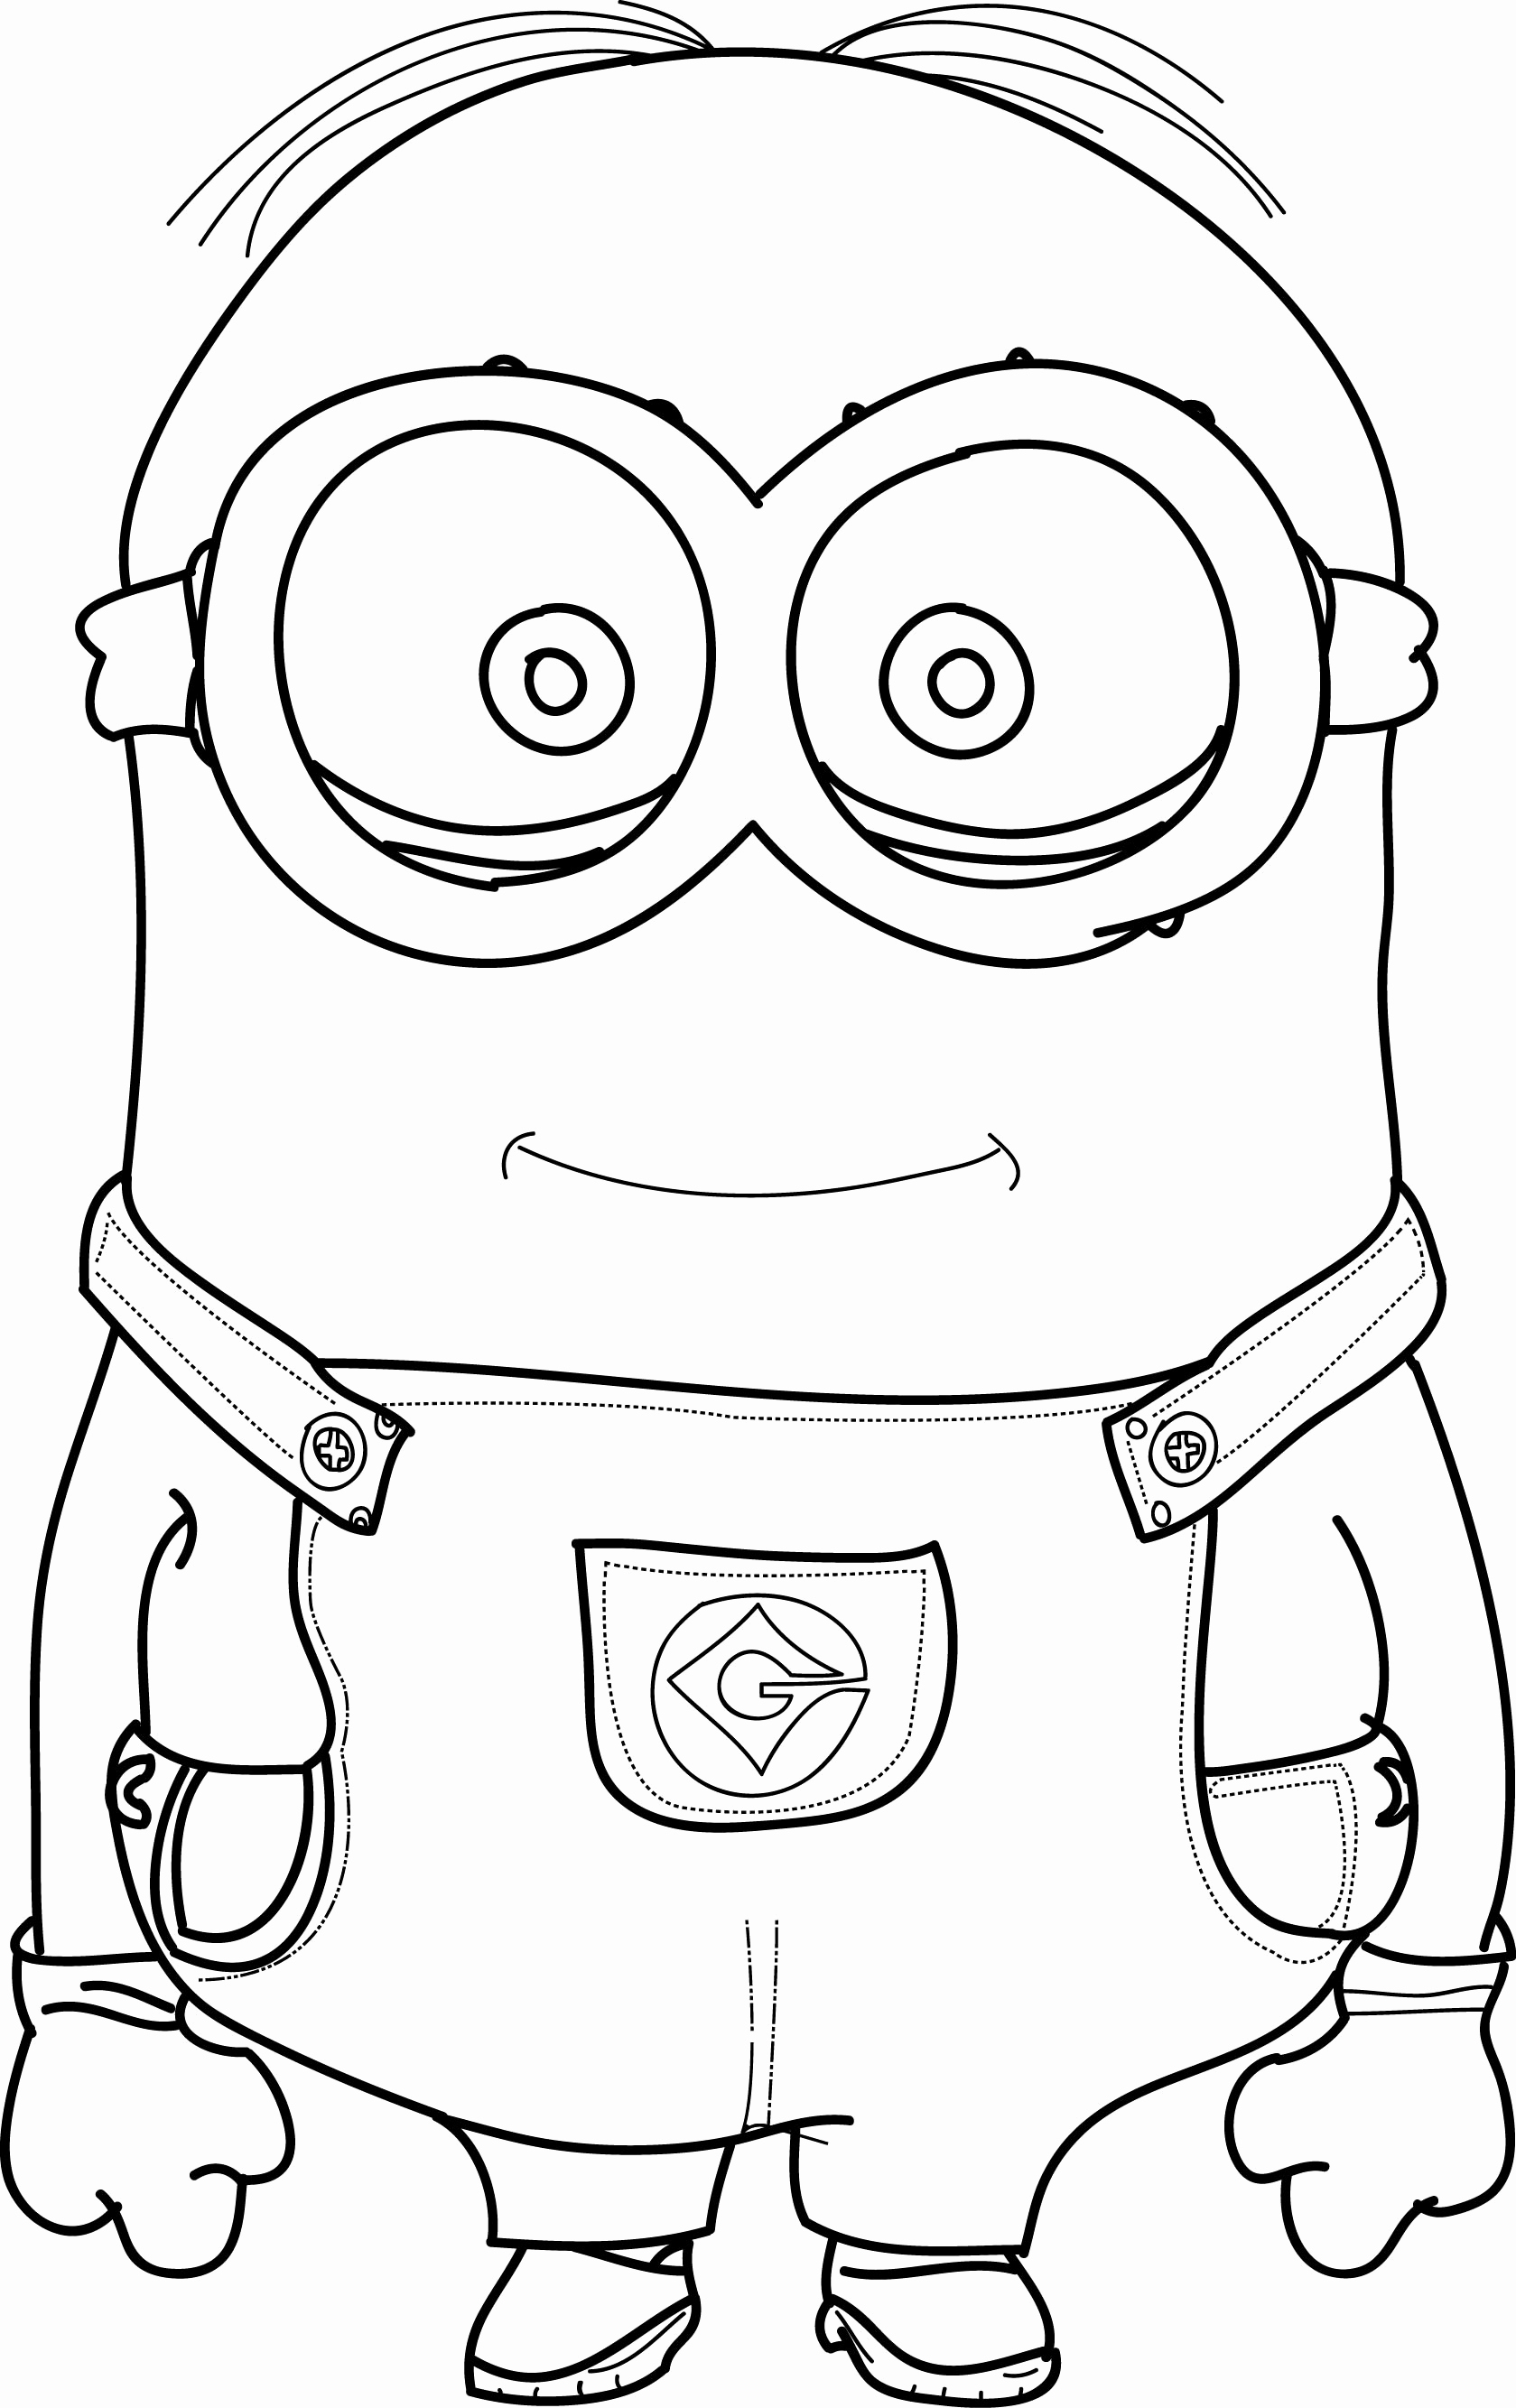 1679x2667 50 Fresh Image Of Minion Coloring Pages To Print